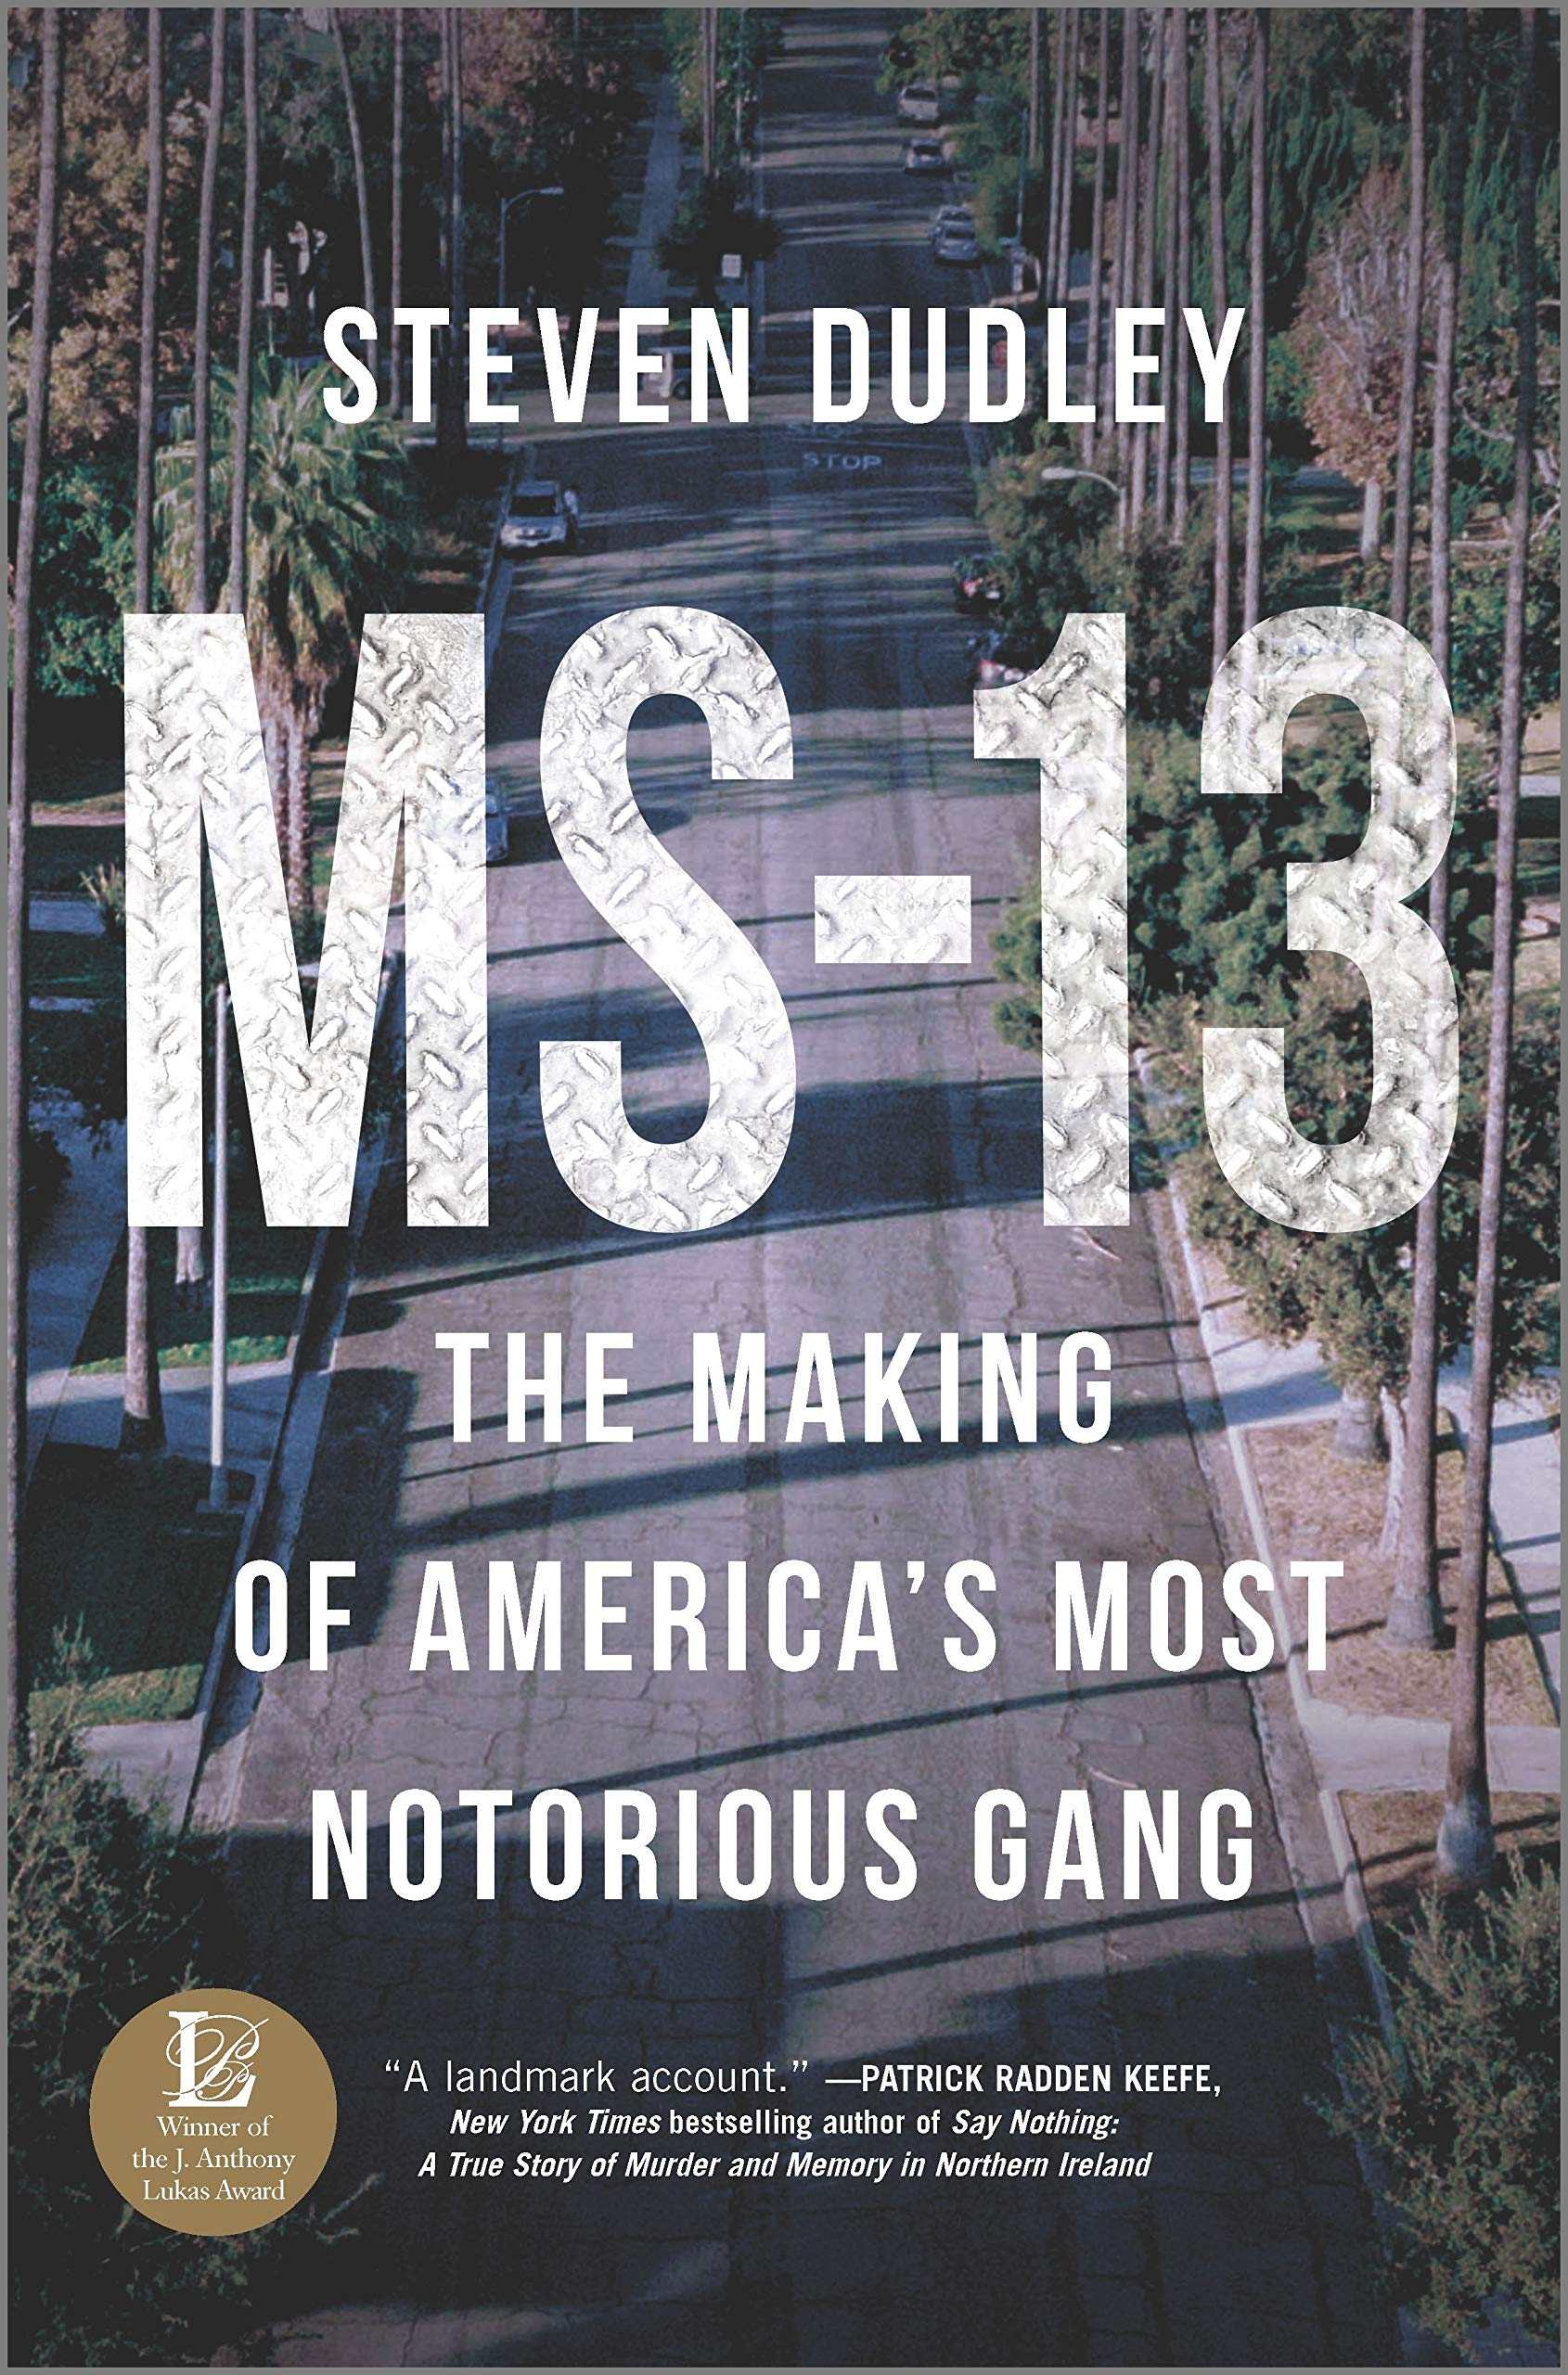 Ms 13 The Making Of America S Most Notorious Gang Dudley Steven 9781335005540 Amazon Com Books